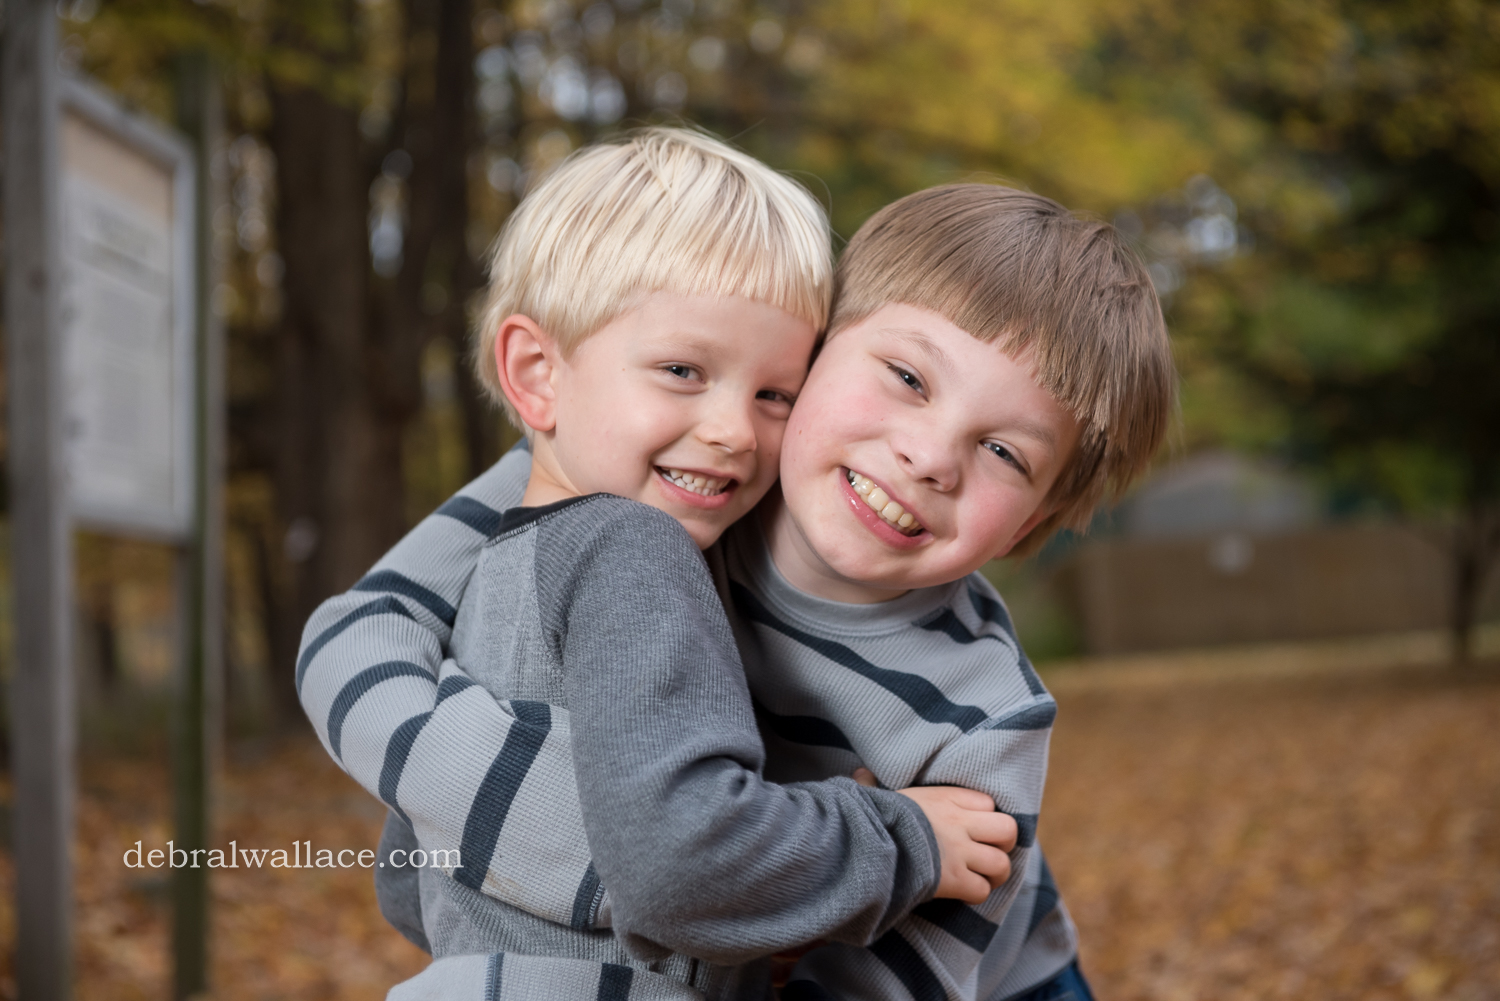 mendon-ponds-family-photography-hollow-log-leaves-brothers-1366